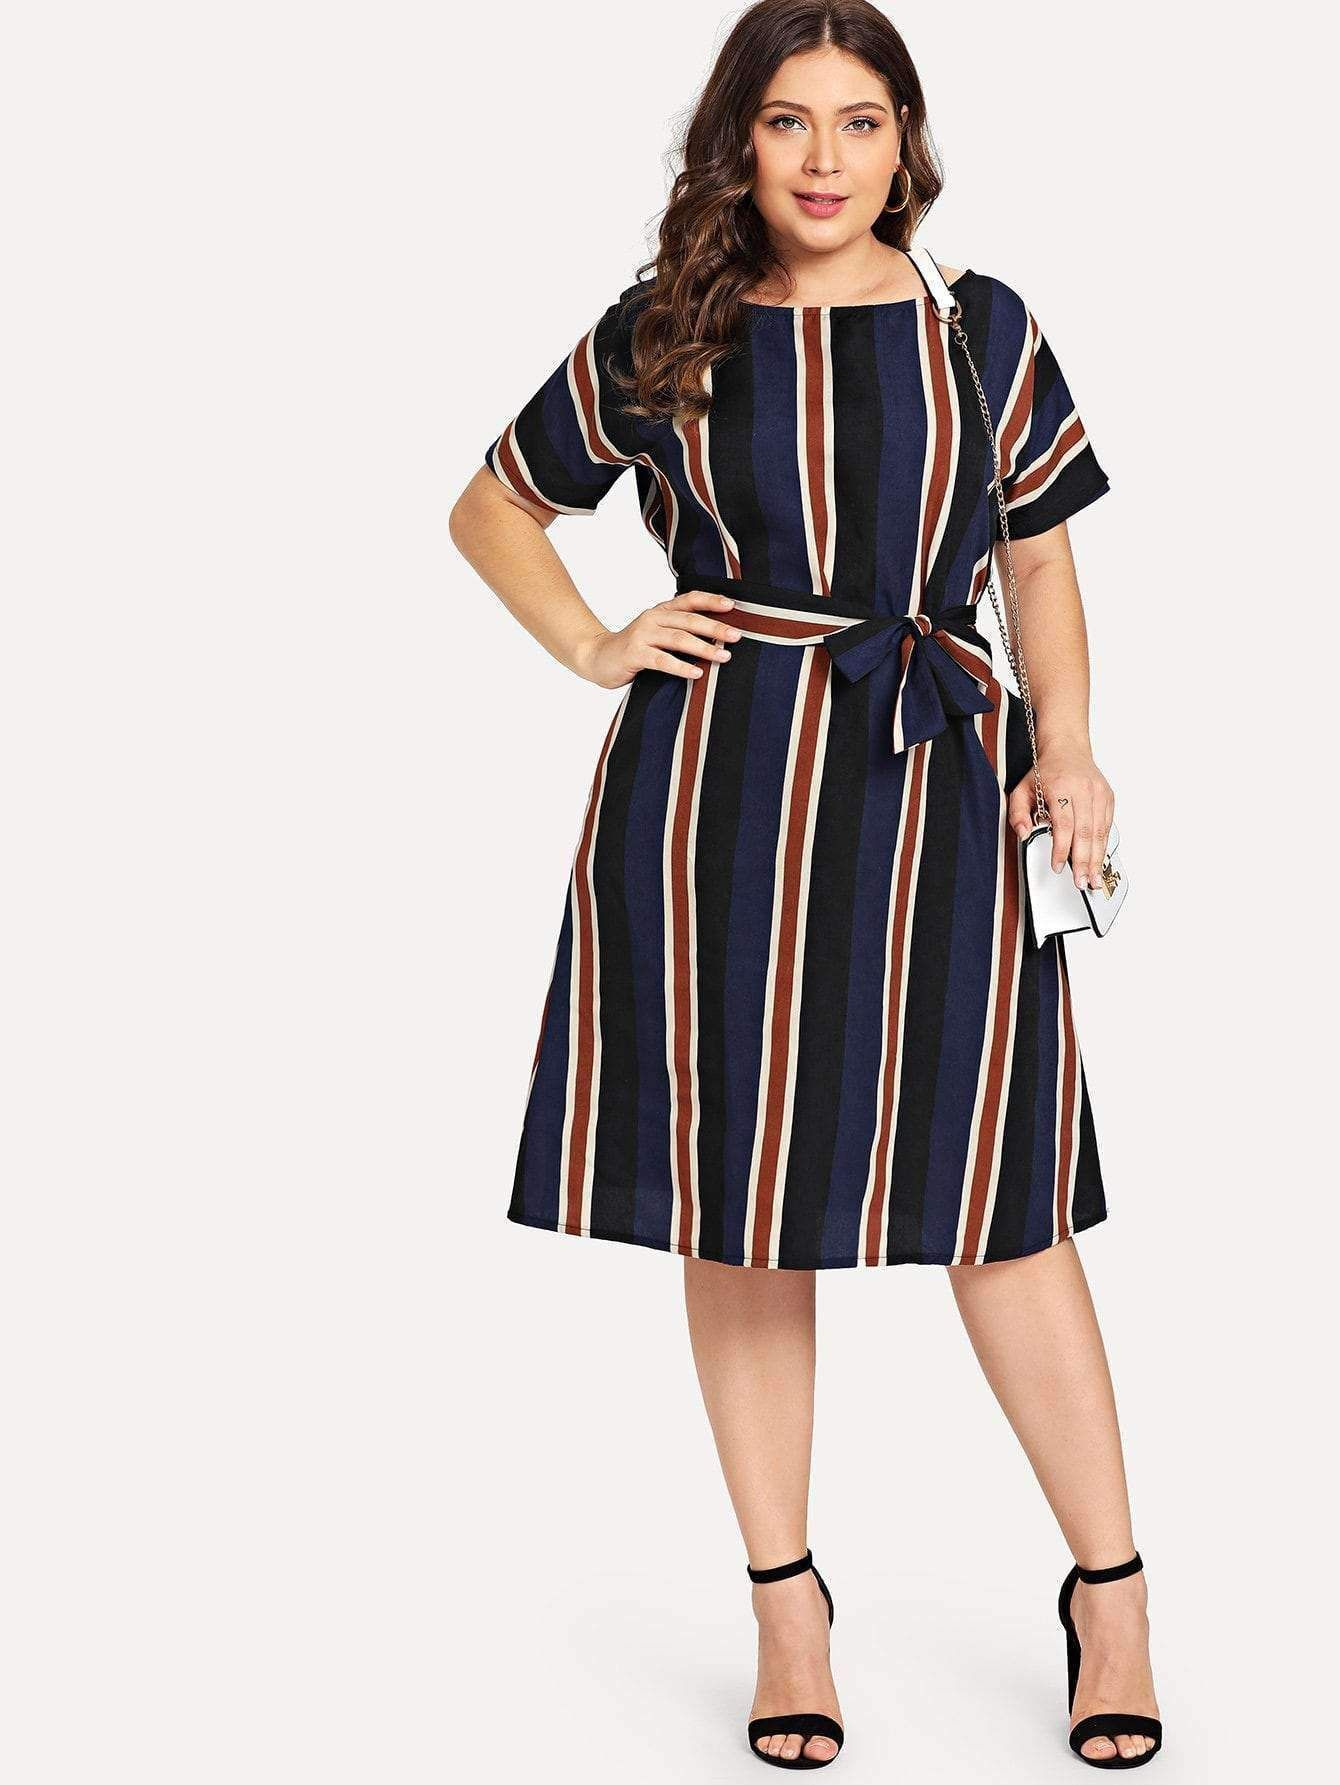 deb658c6ba Short Sleeve Dresses · Outfit · Get comfy now - and never pay too much  again! Striped Dress now on https